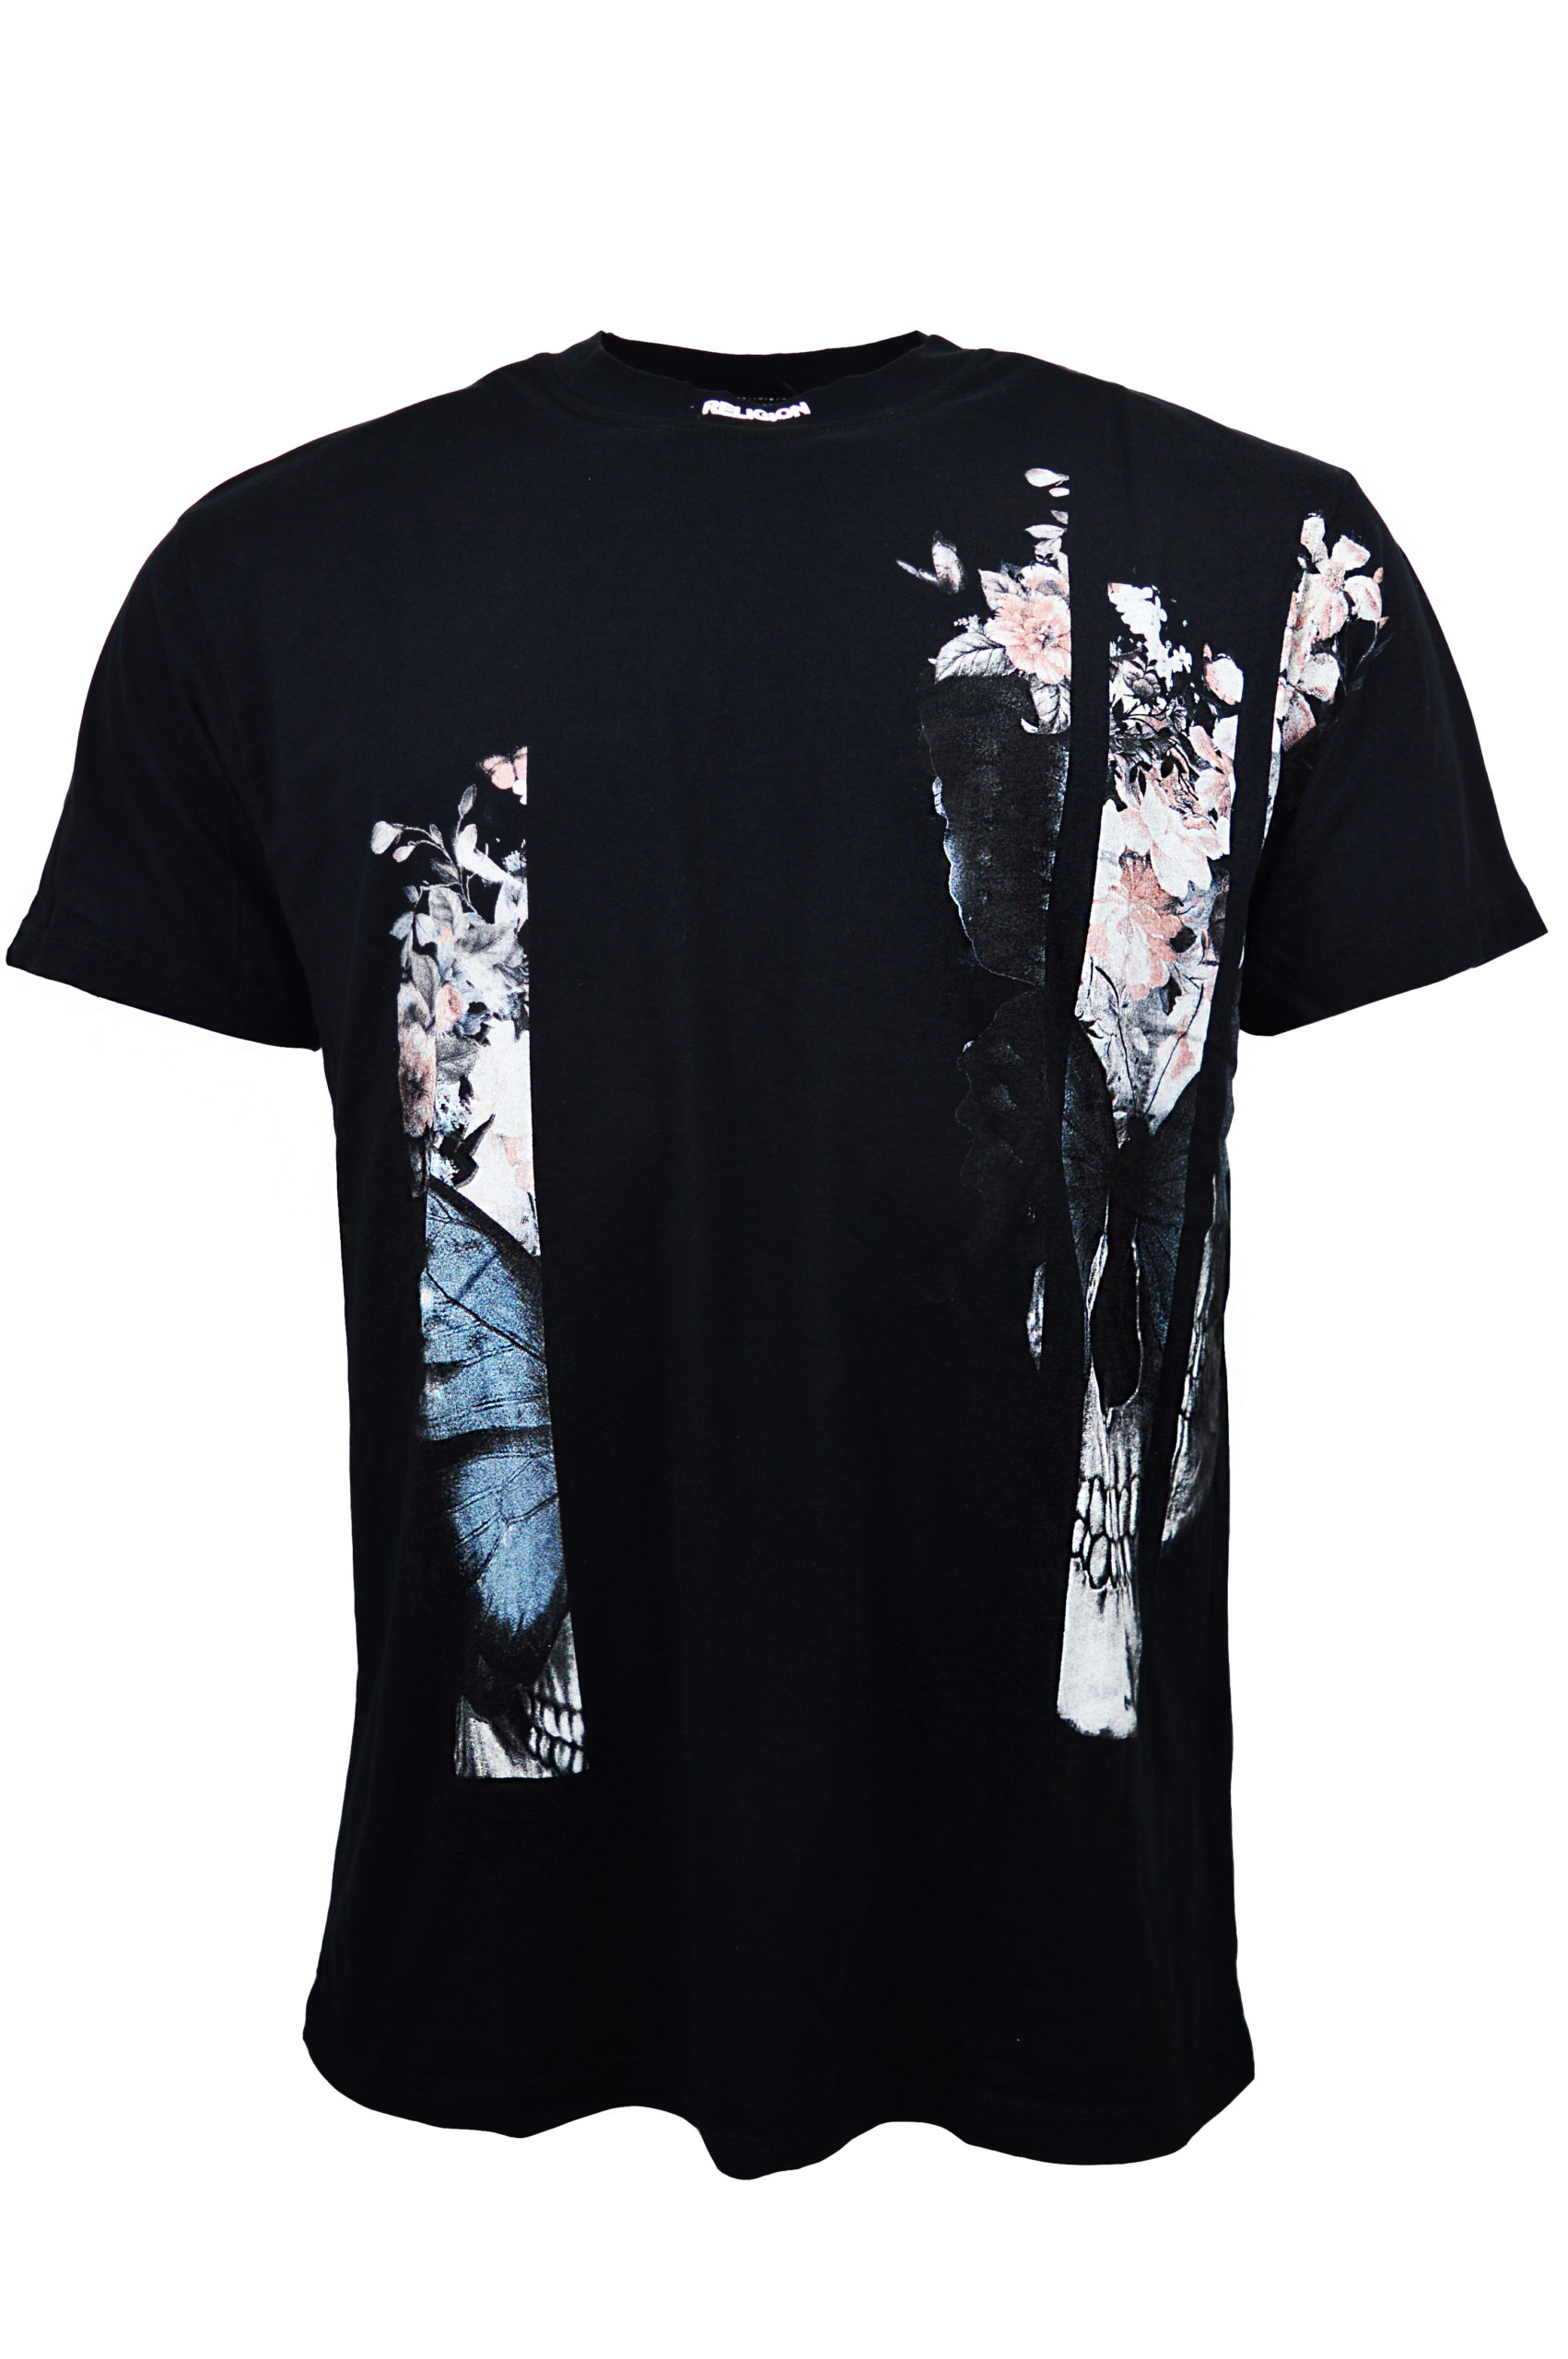 Religion - Butterfly T-Shirt - Black